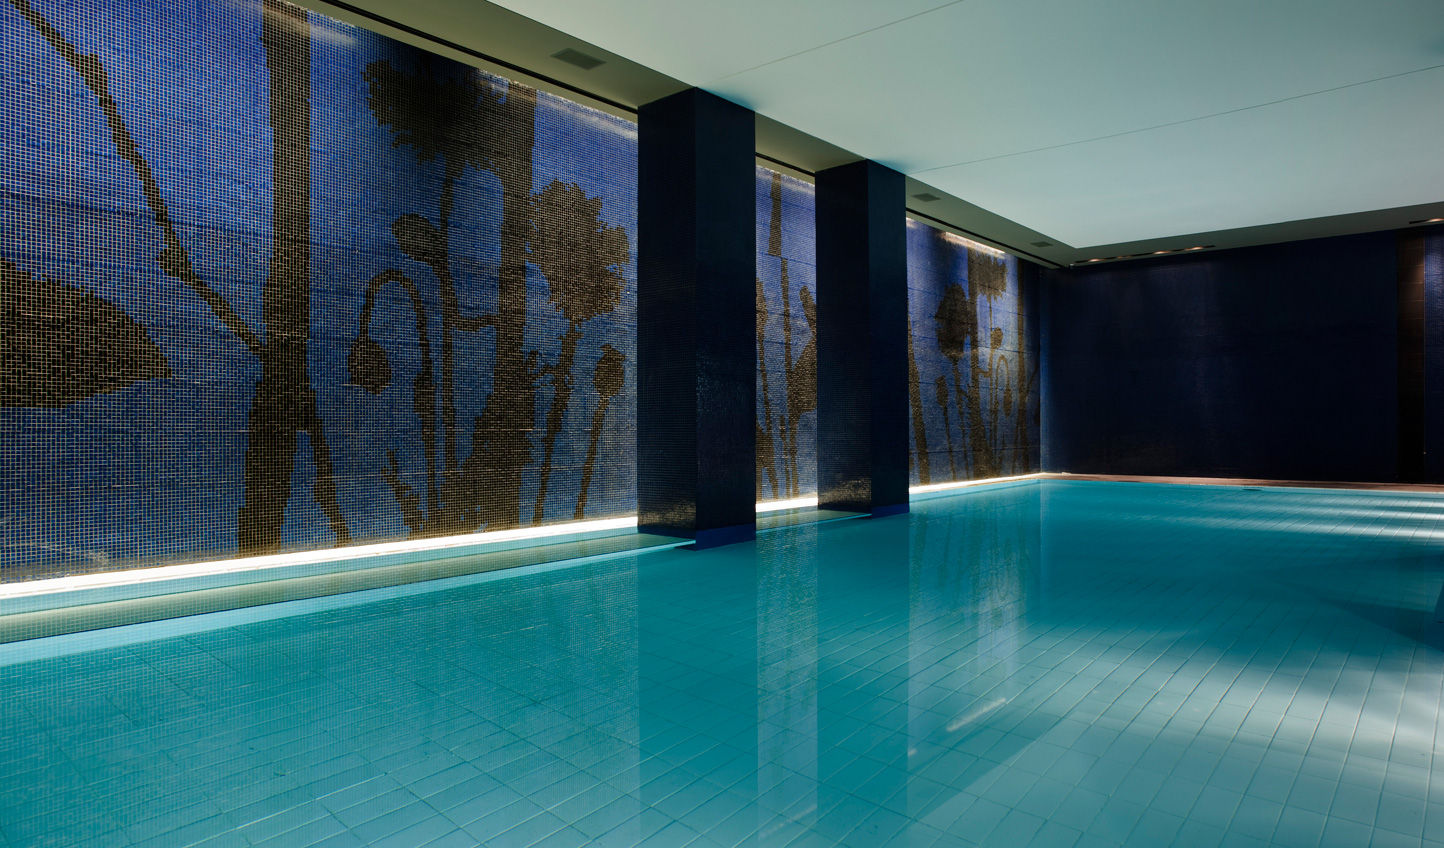 Rest your weary muscles with a couple of laps of the indoor pool